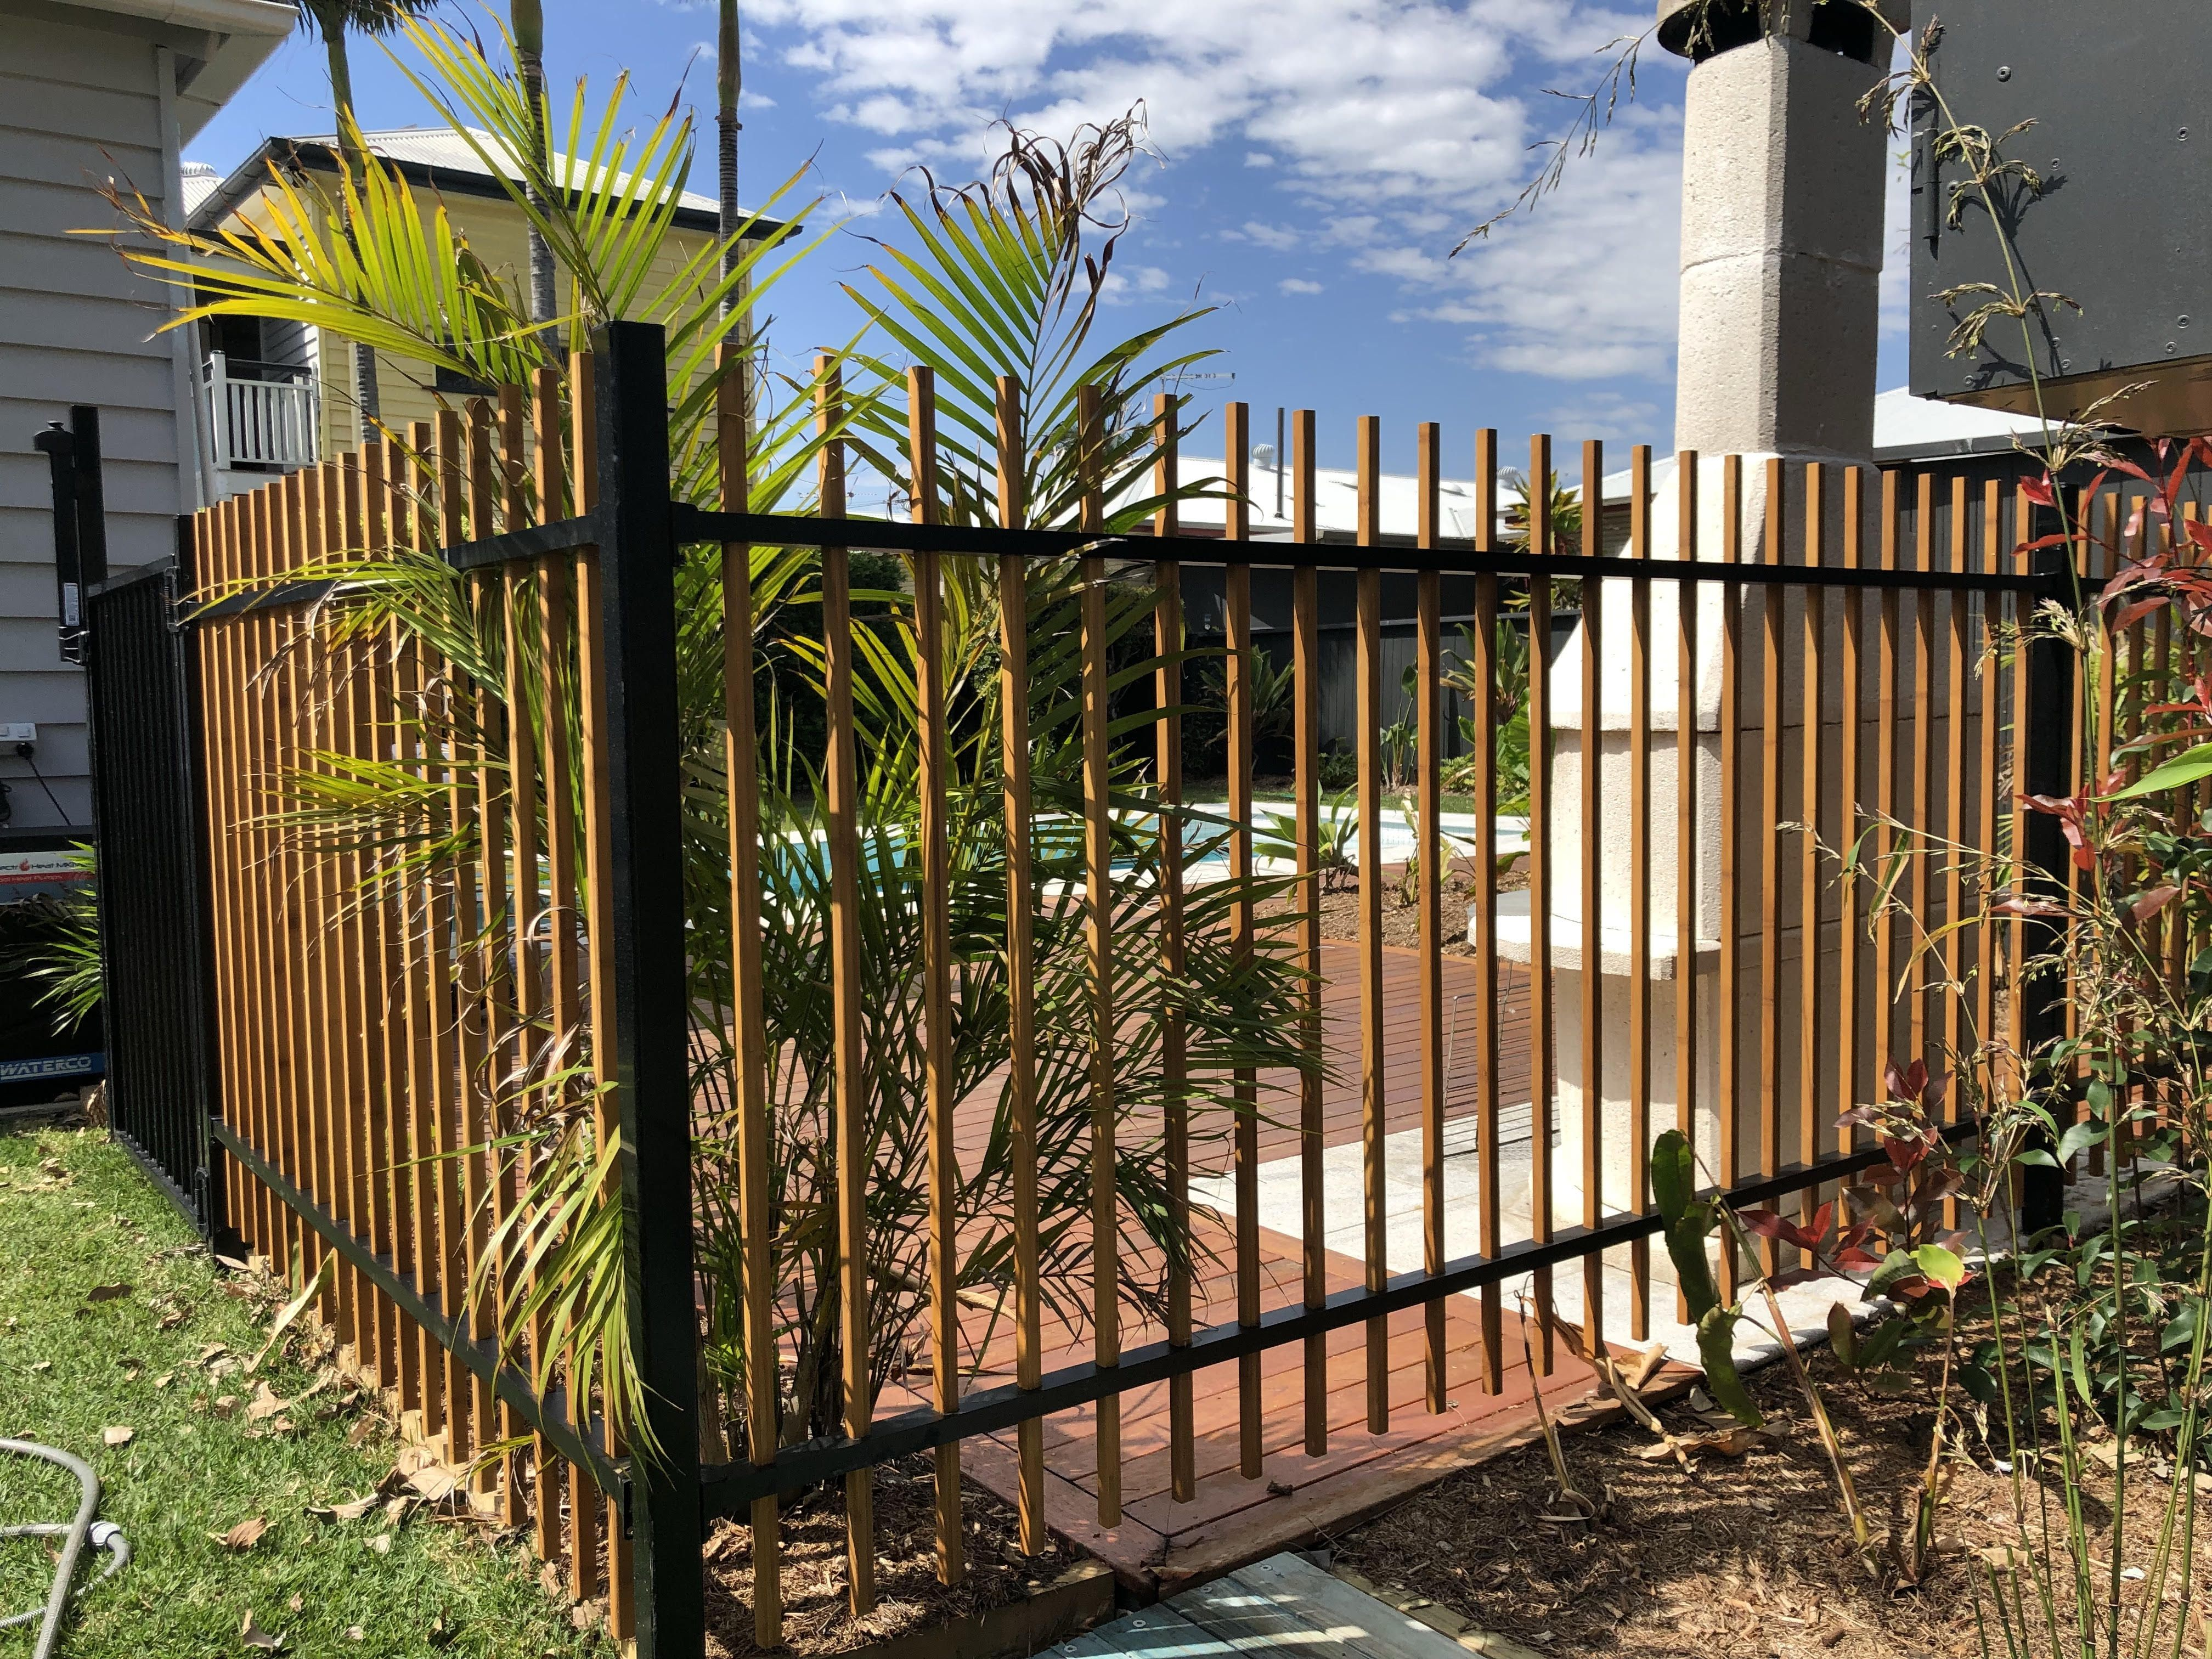 Latest Design In Pool And Boundary Fencing The Hybrid Fence And